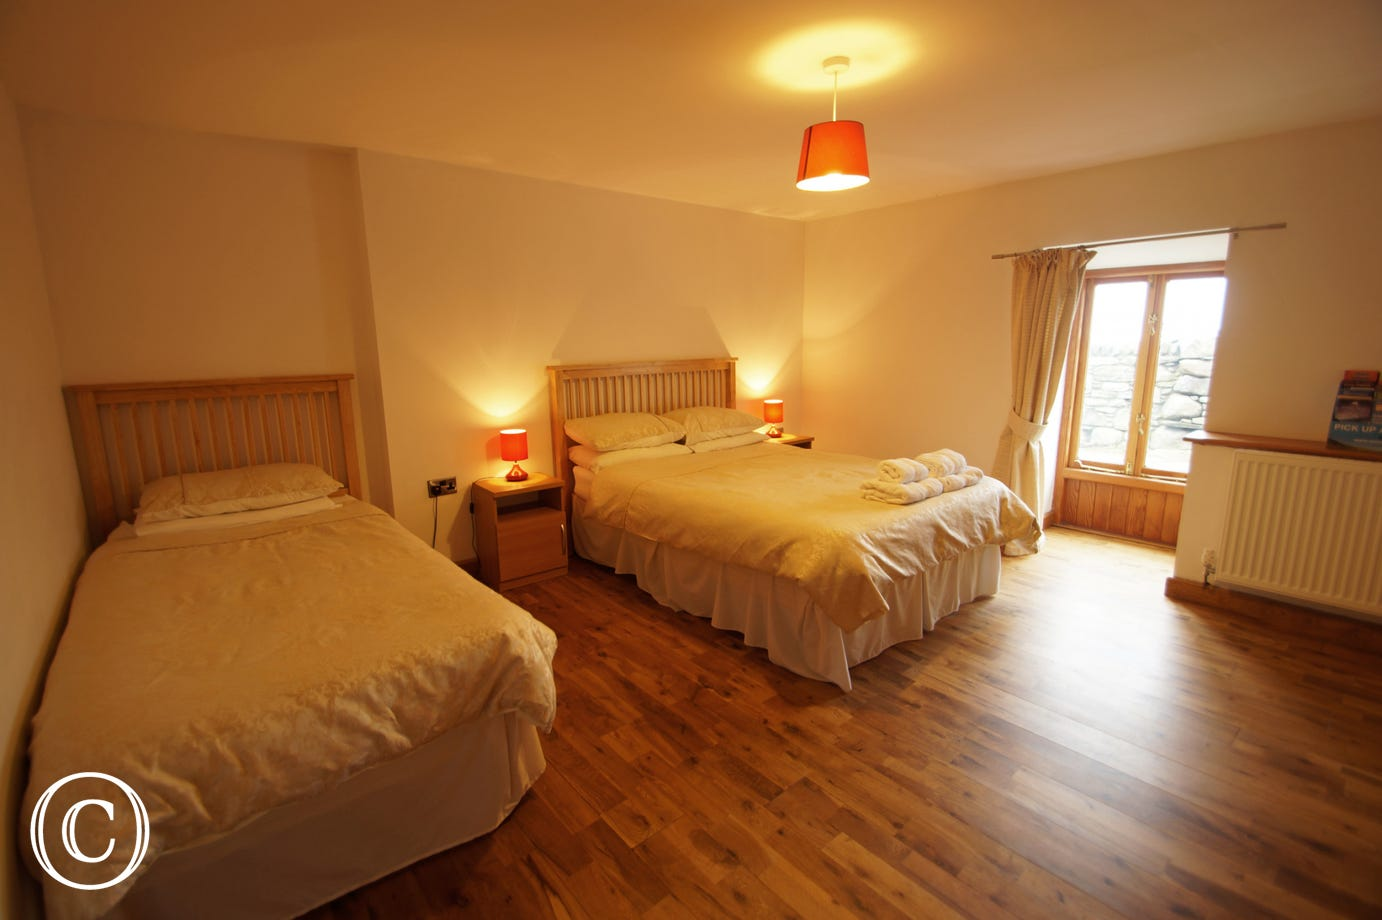 The second bedroom offers a comfy double and a single bed